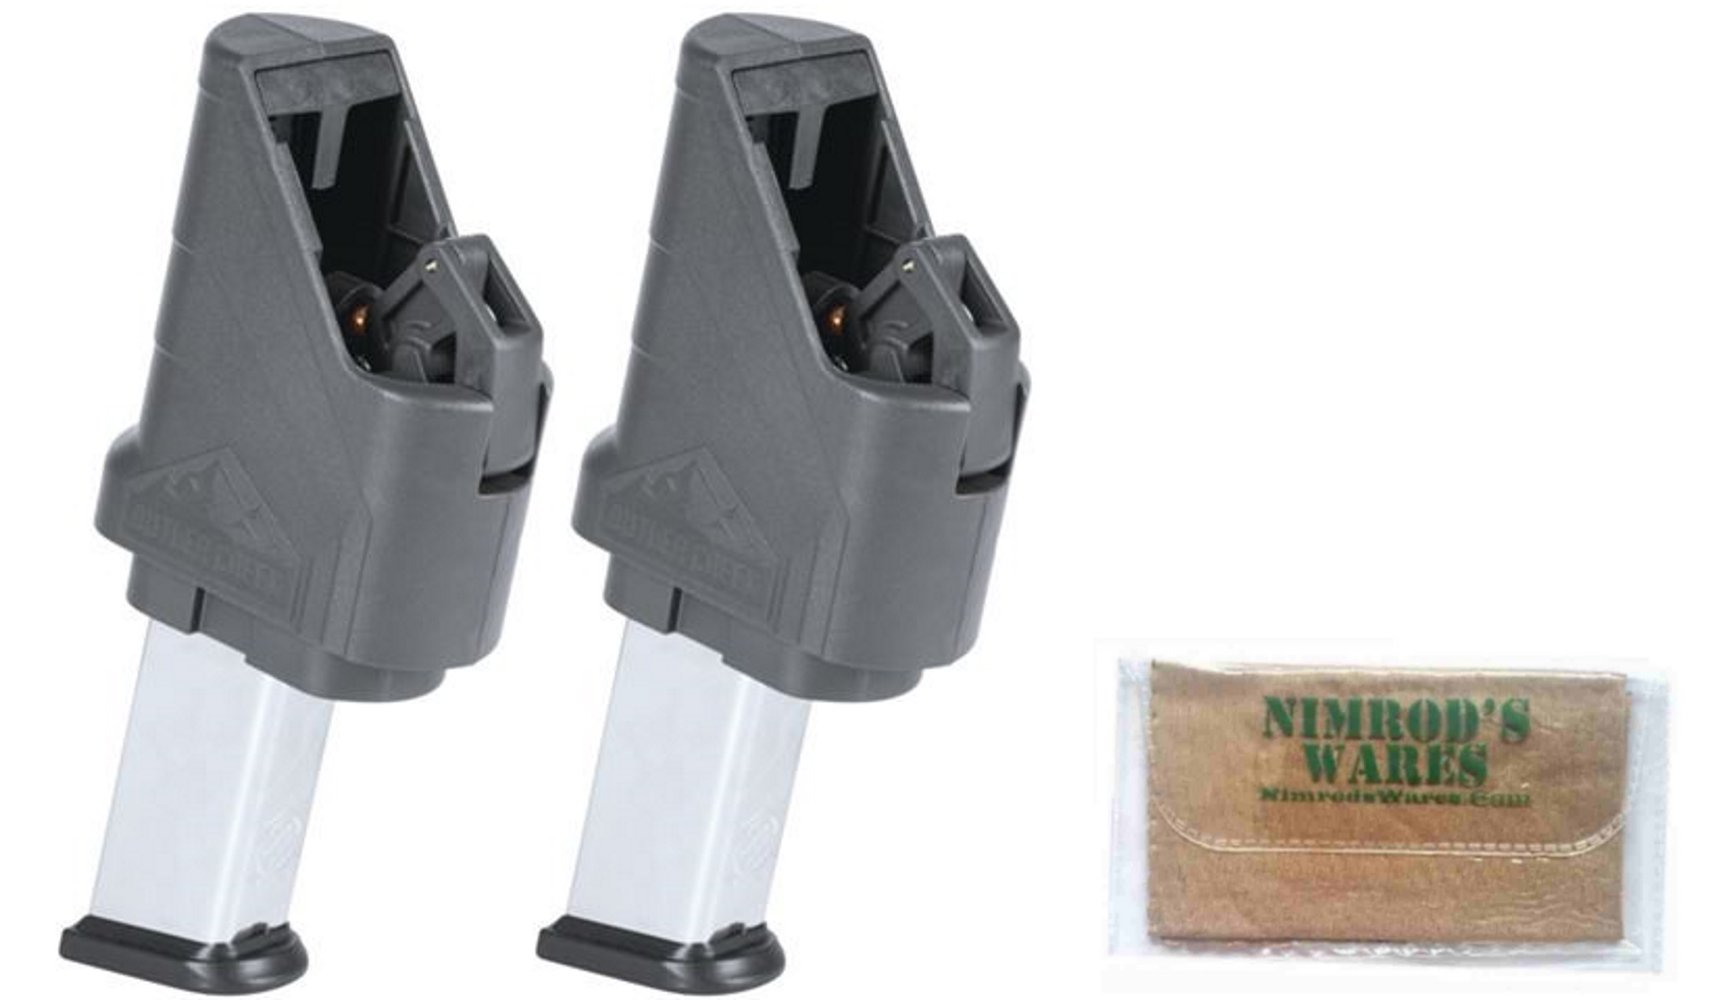 Nimrod's Wares 2-Pack Butler Creek ASAP Double Stack Magazine Loaders .380-.45ACP Microfiber Cloth